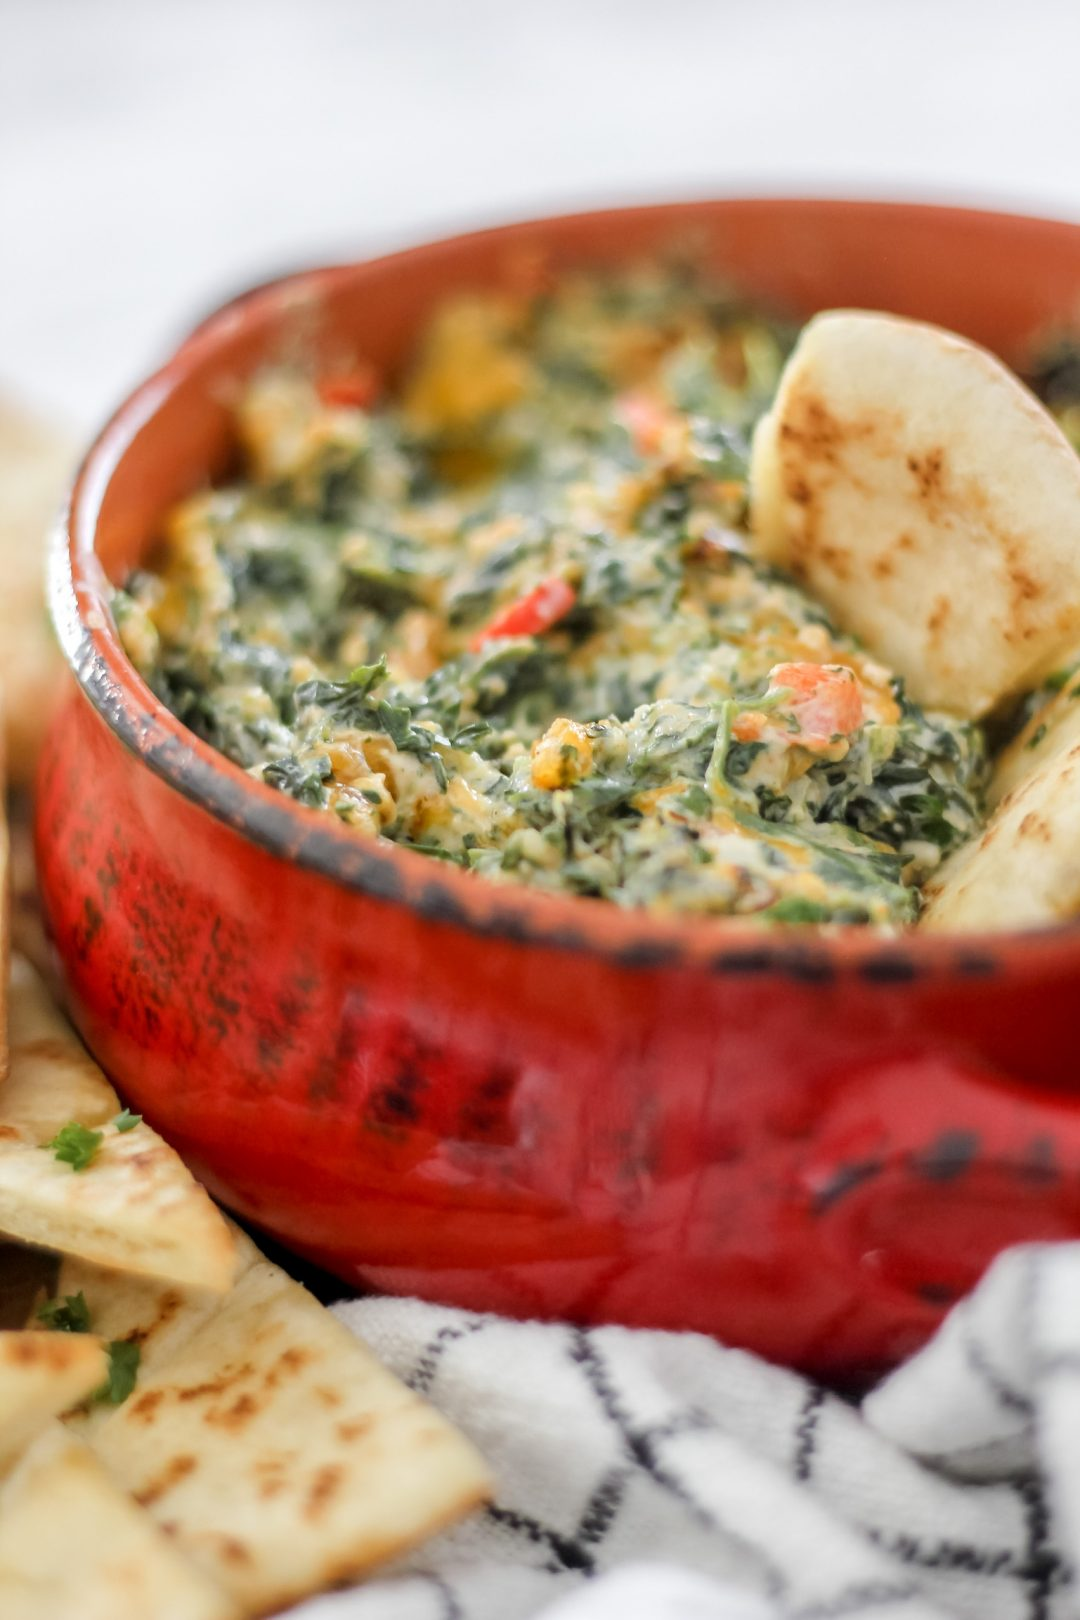 Spinach Dip in Red Bowl